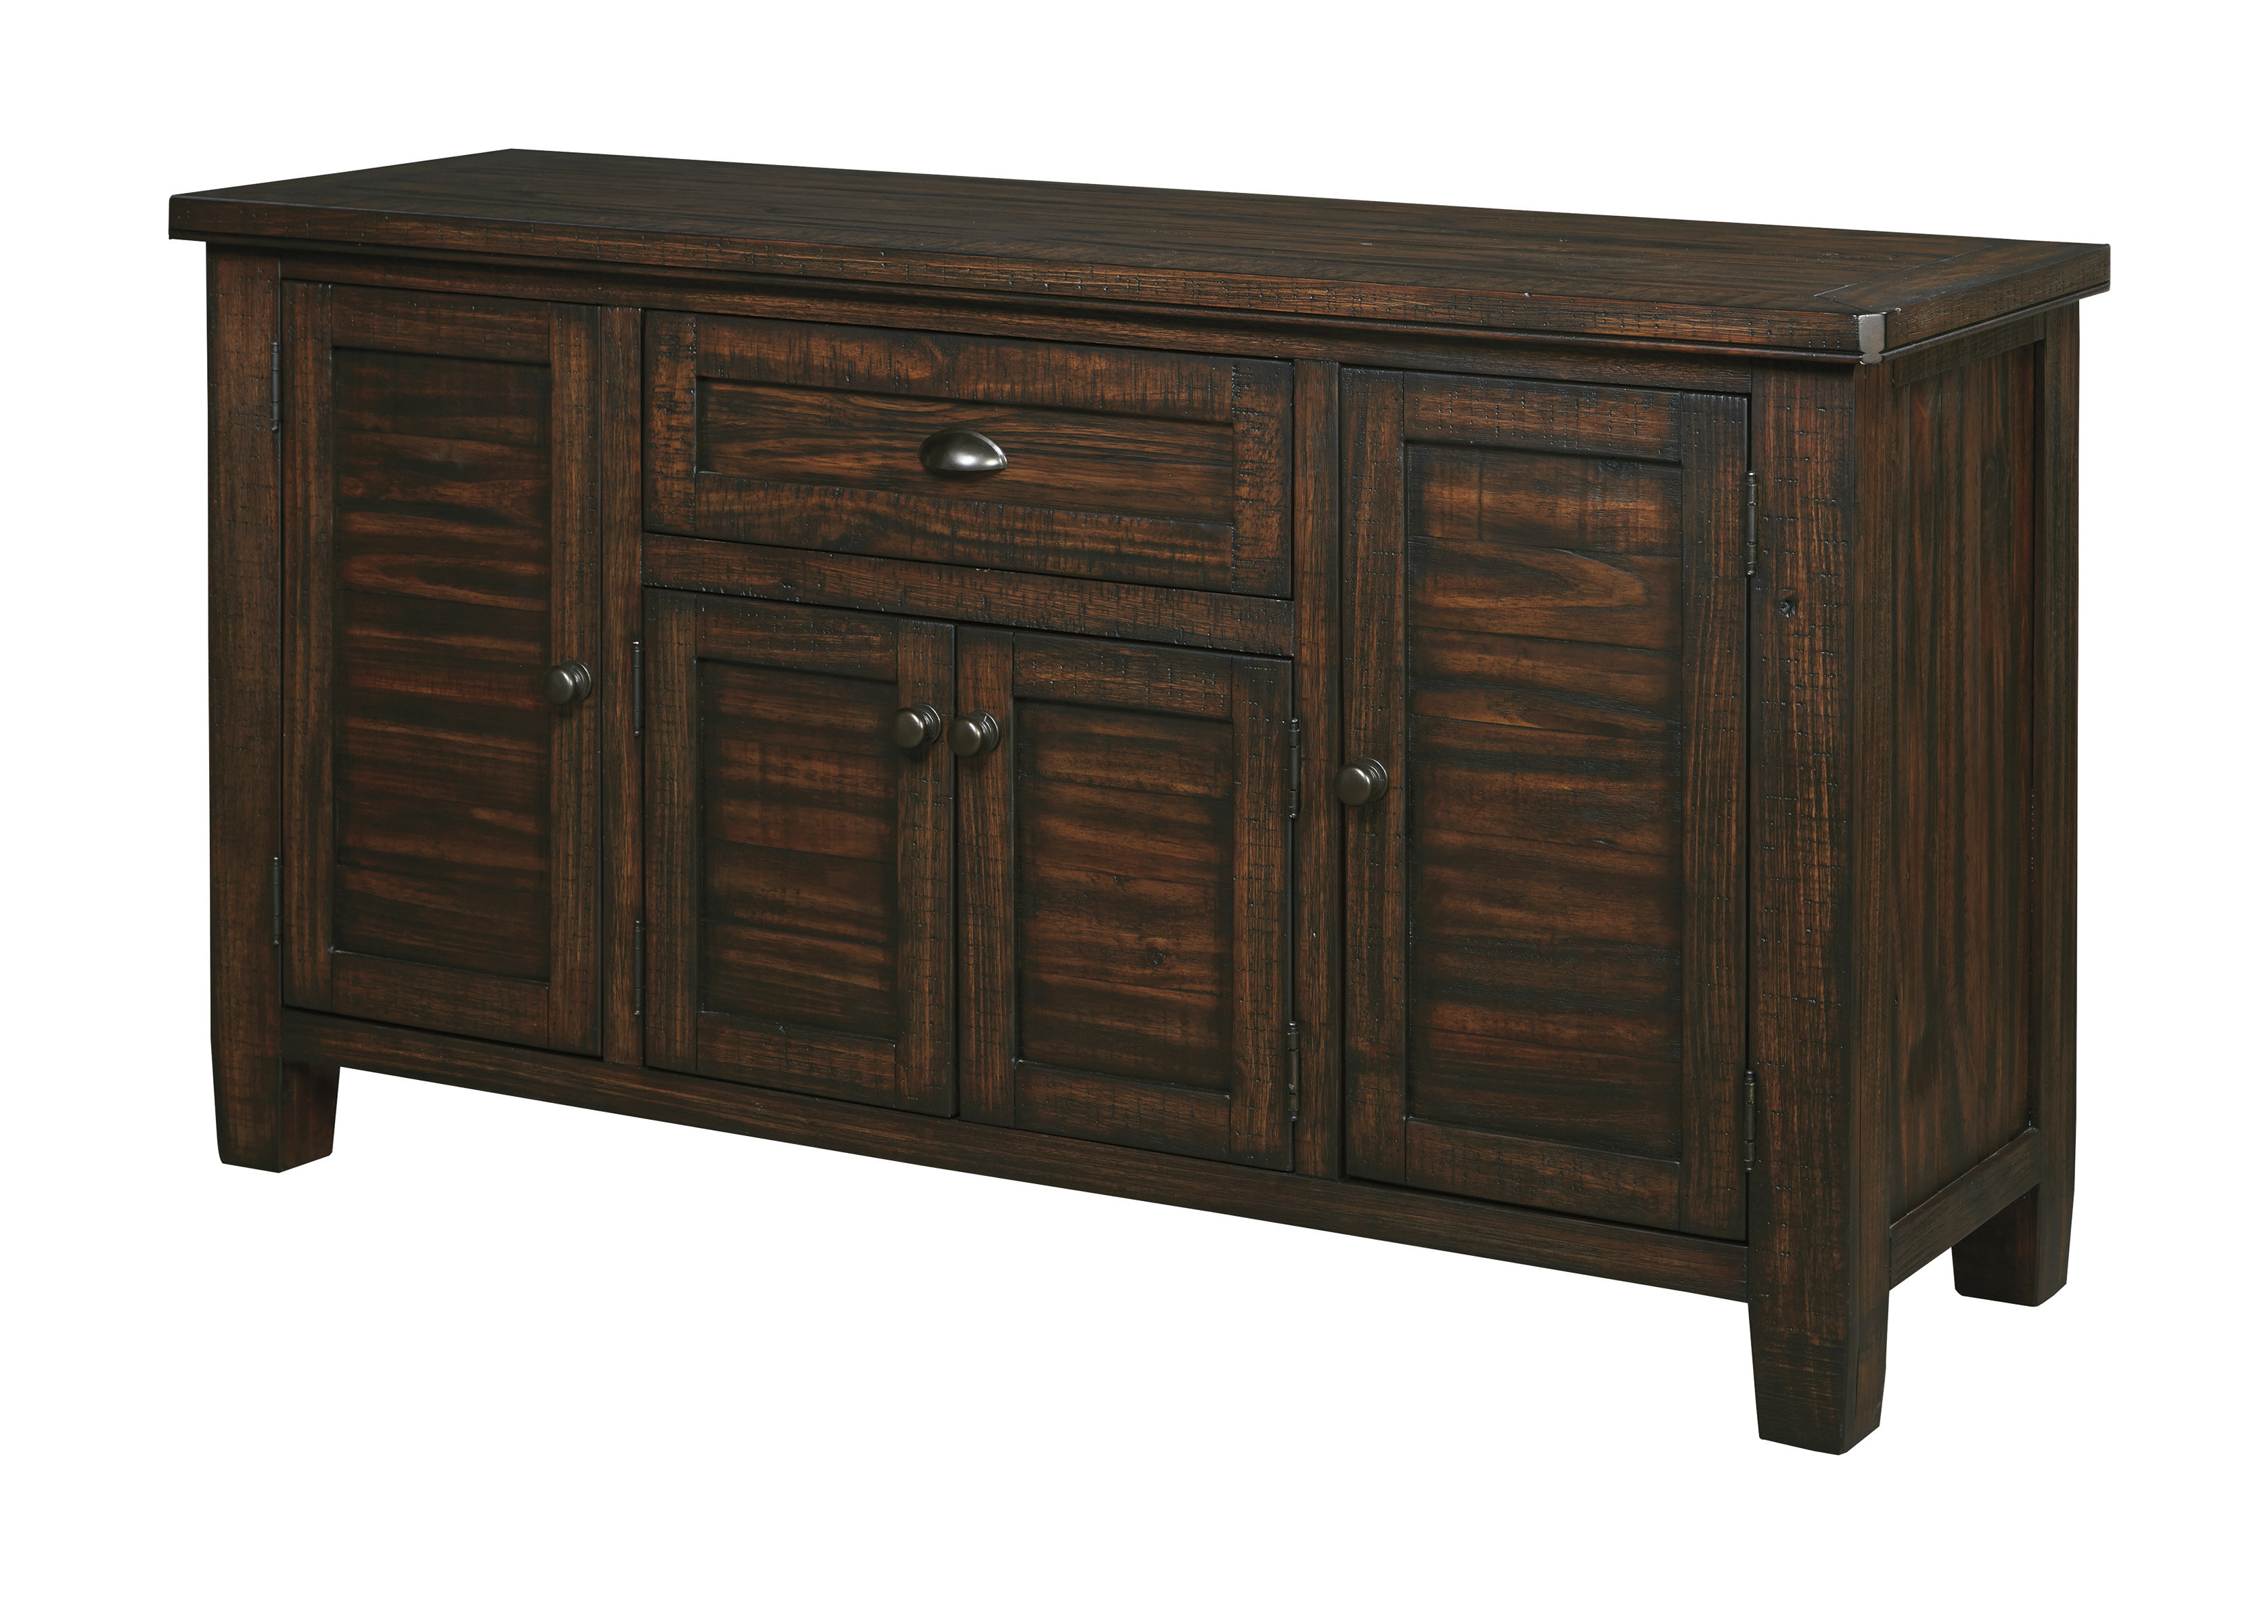 Fortville Sideboards For 2019 Chaffins Sideboard (View 6 of 20)